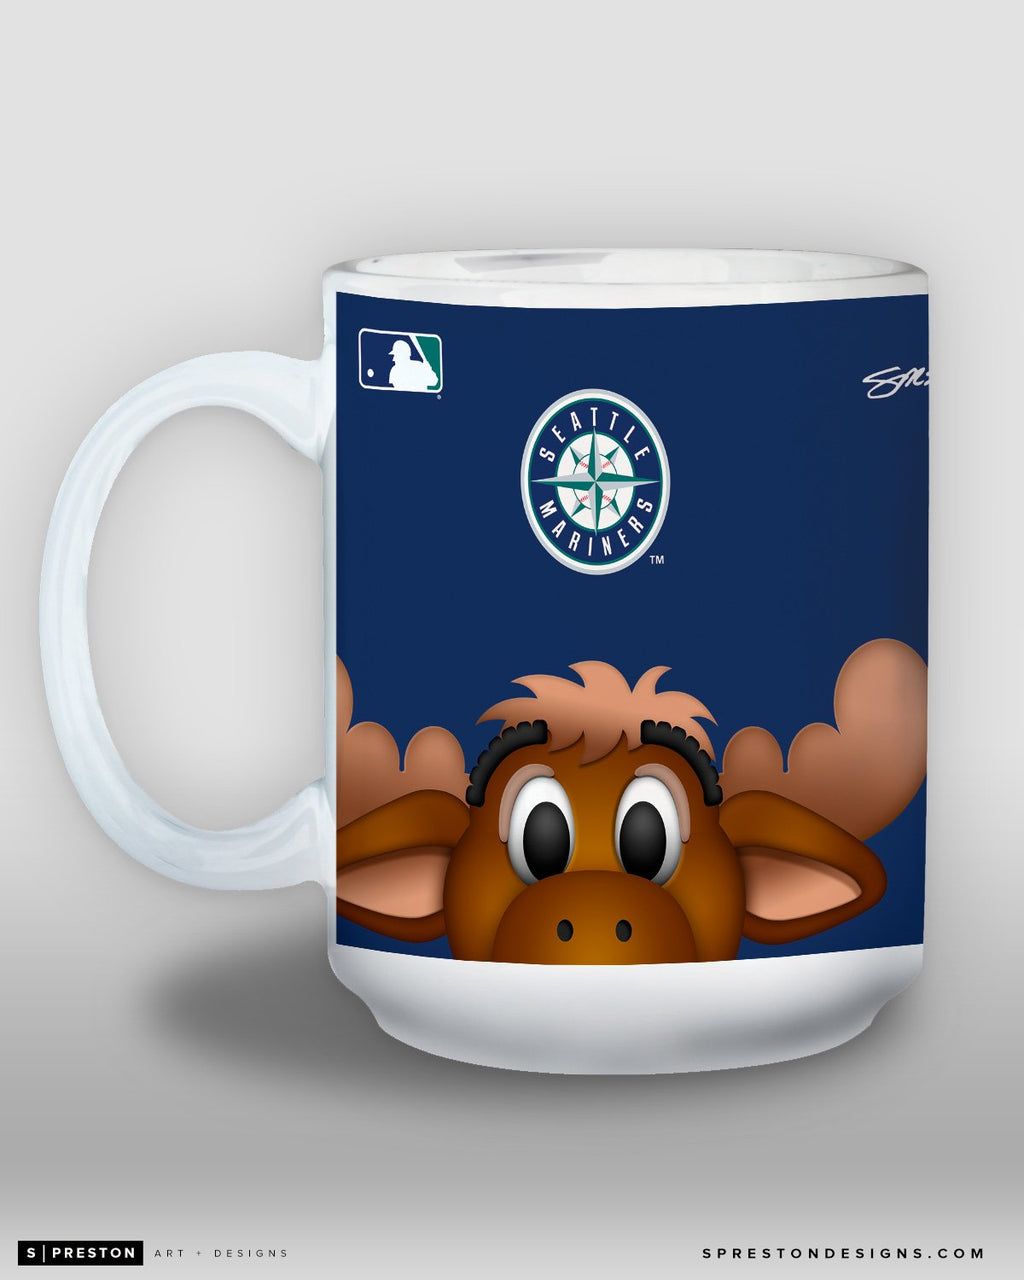 Minimalist Mariner Moose Coffee Mug - MLB Licensed - Seattle Mariners Mascot